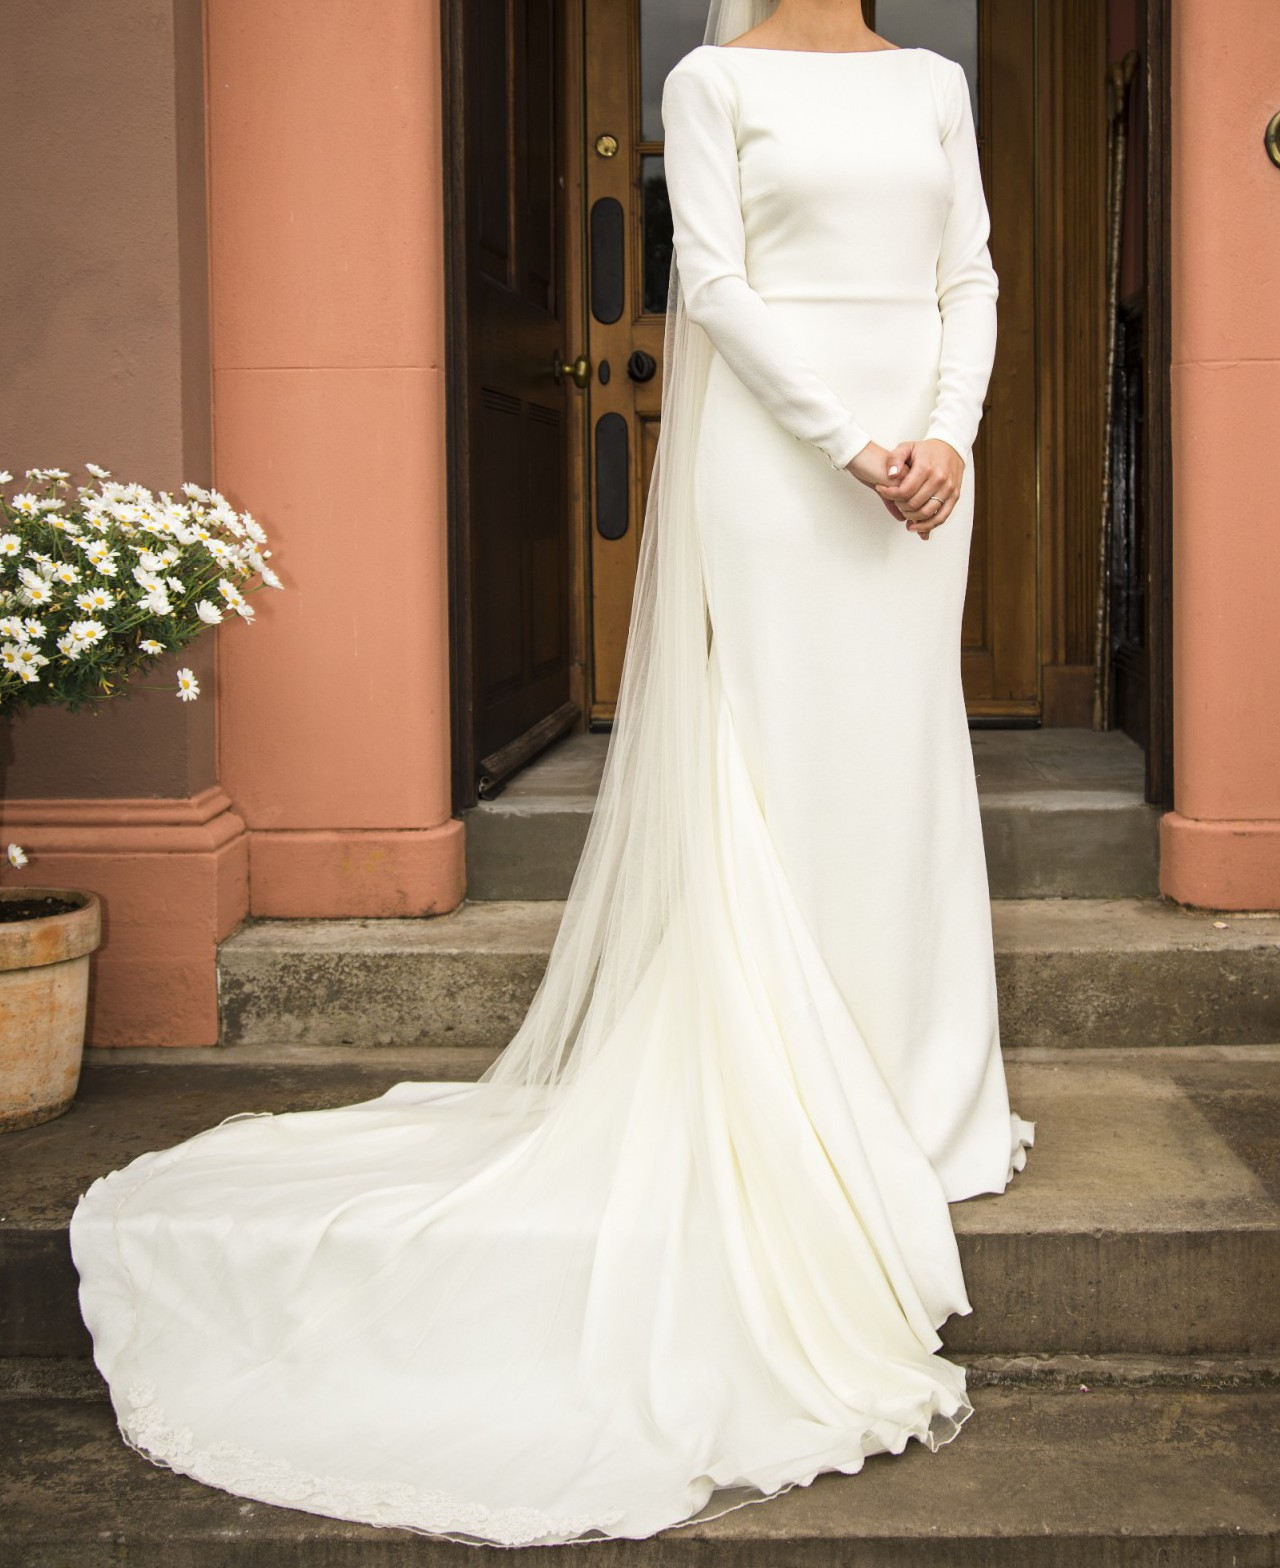 Pronovias Ivania Atelier Preloved Wedding Dress On Sale 50